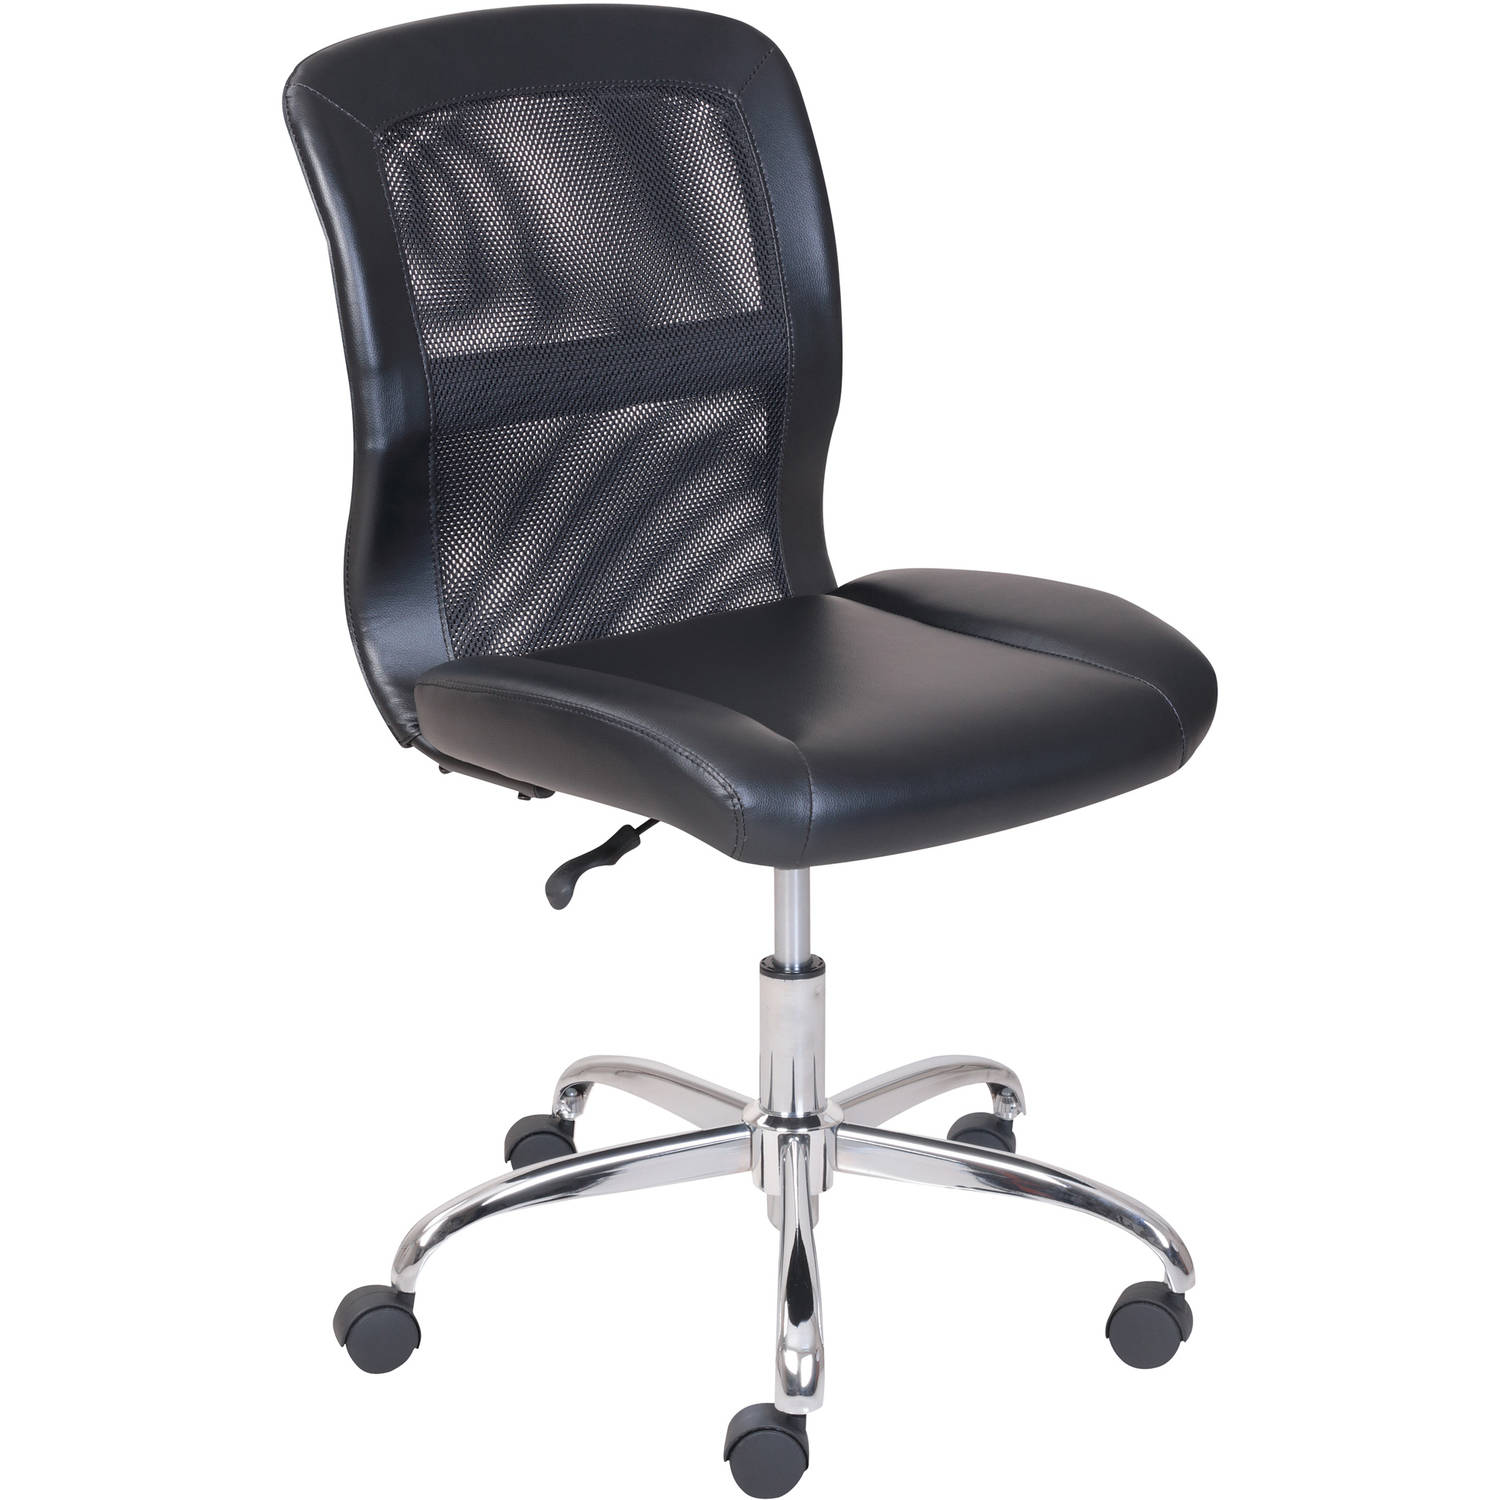 Details About Mainstays Vinyl Mesh Executive Armless Back Office Computer Desk Chair Black